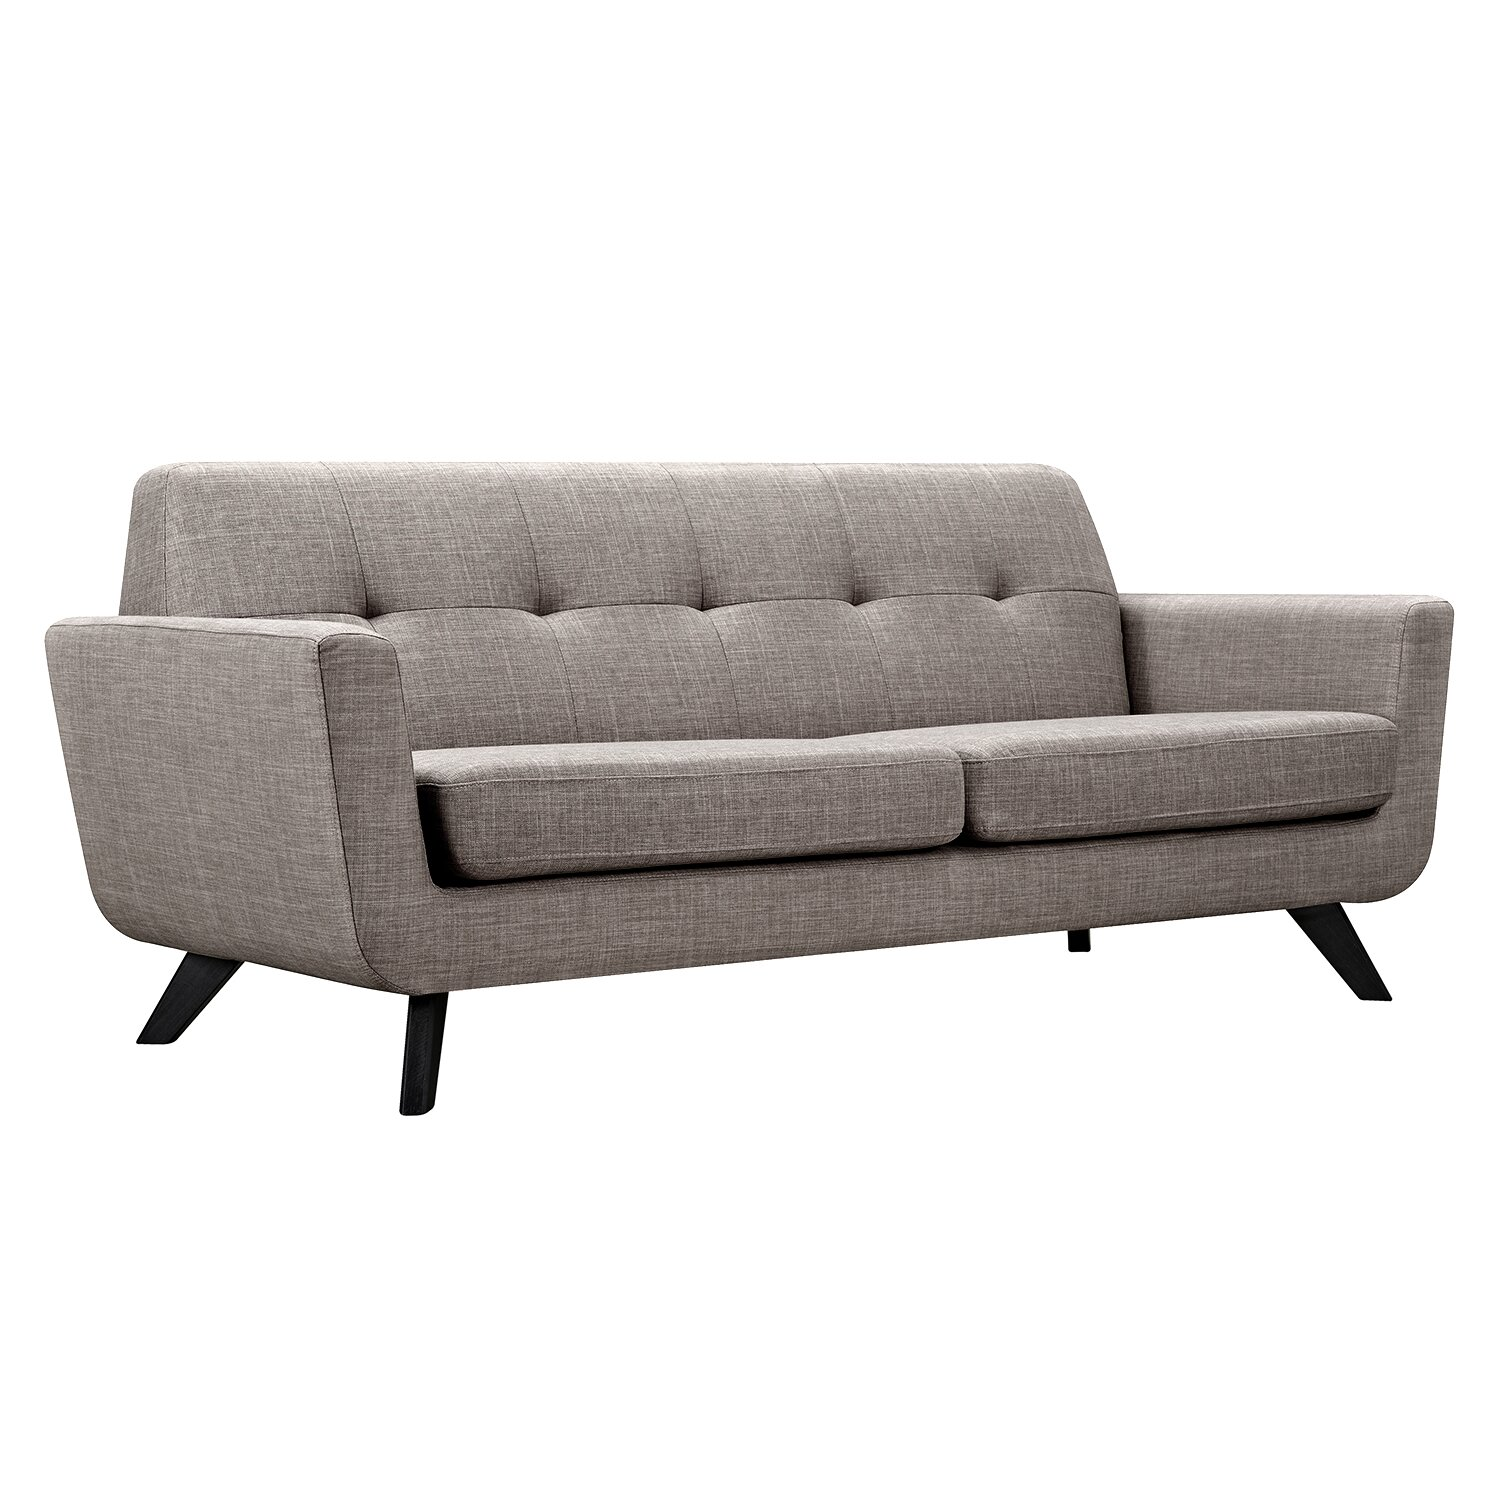 Dania Futon Home Decor